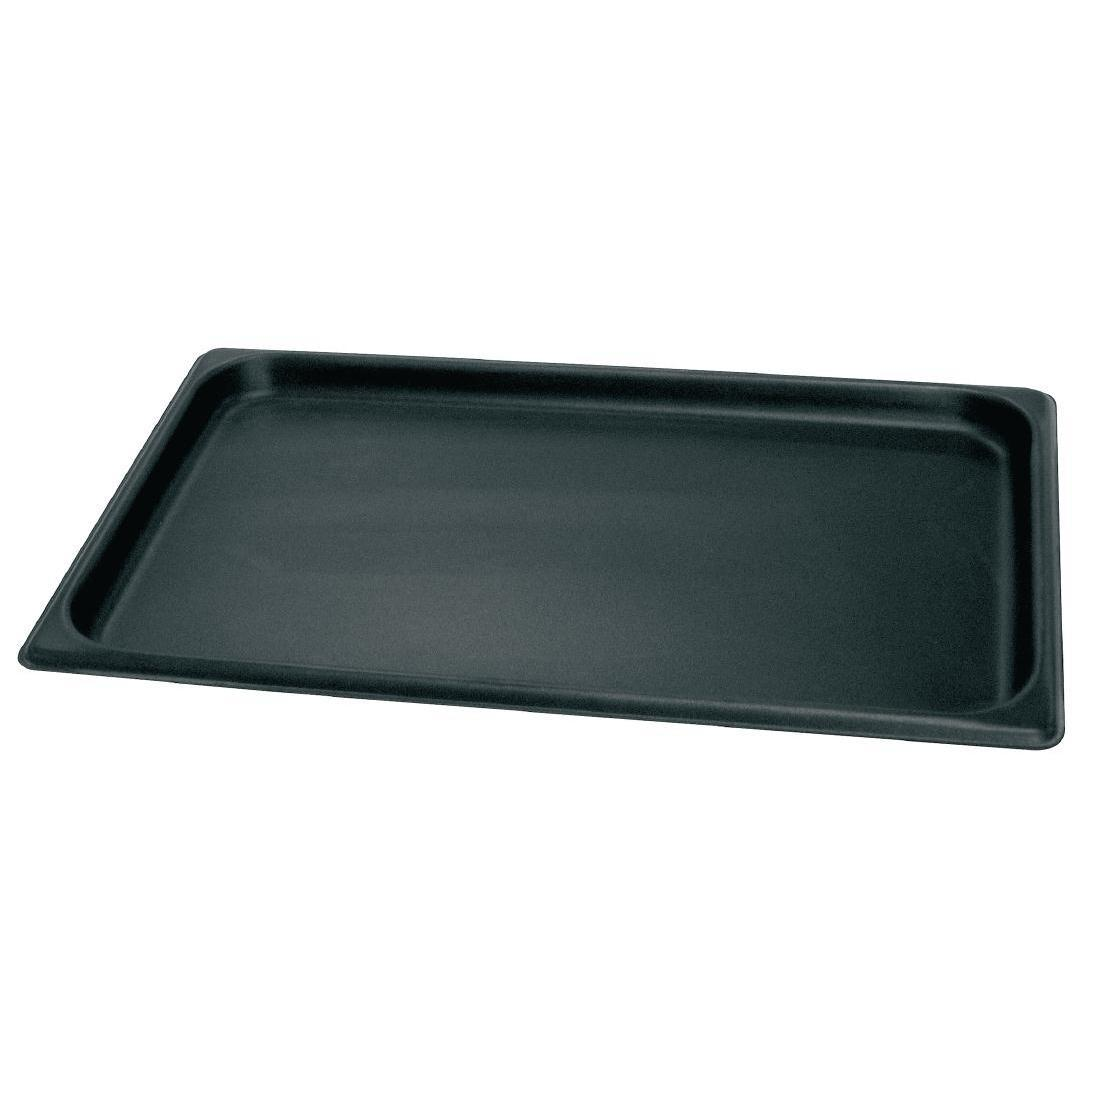 Vogue Gastronorm Non Stick Baking Sheet - S373